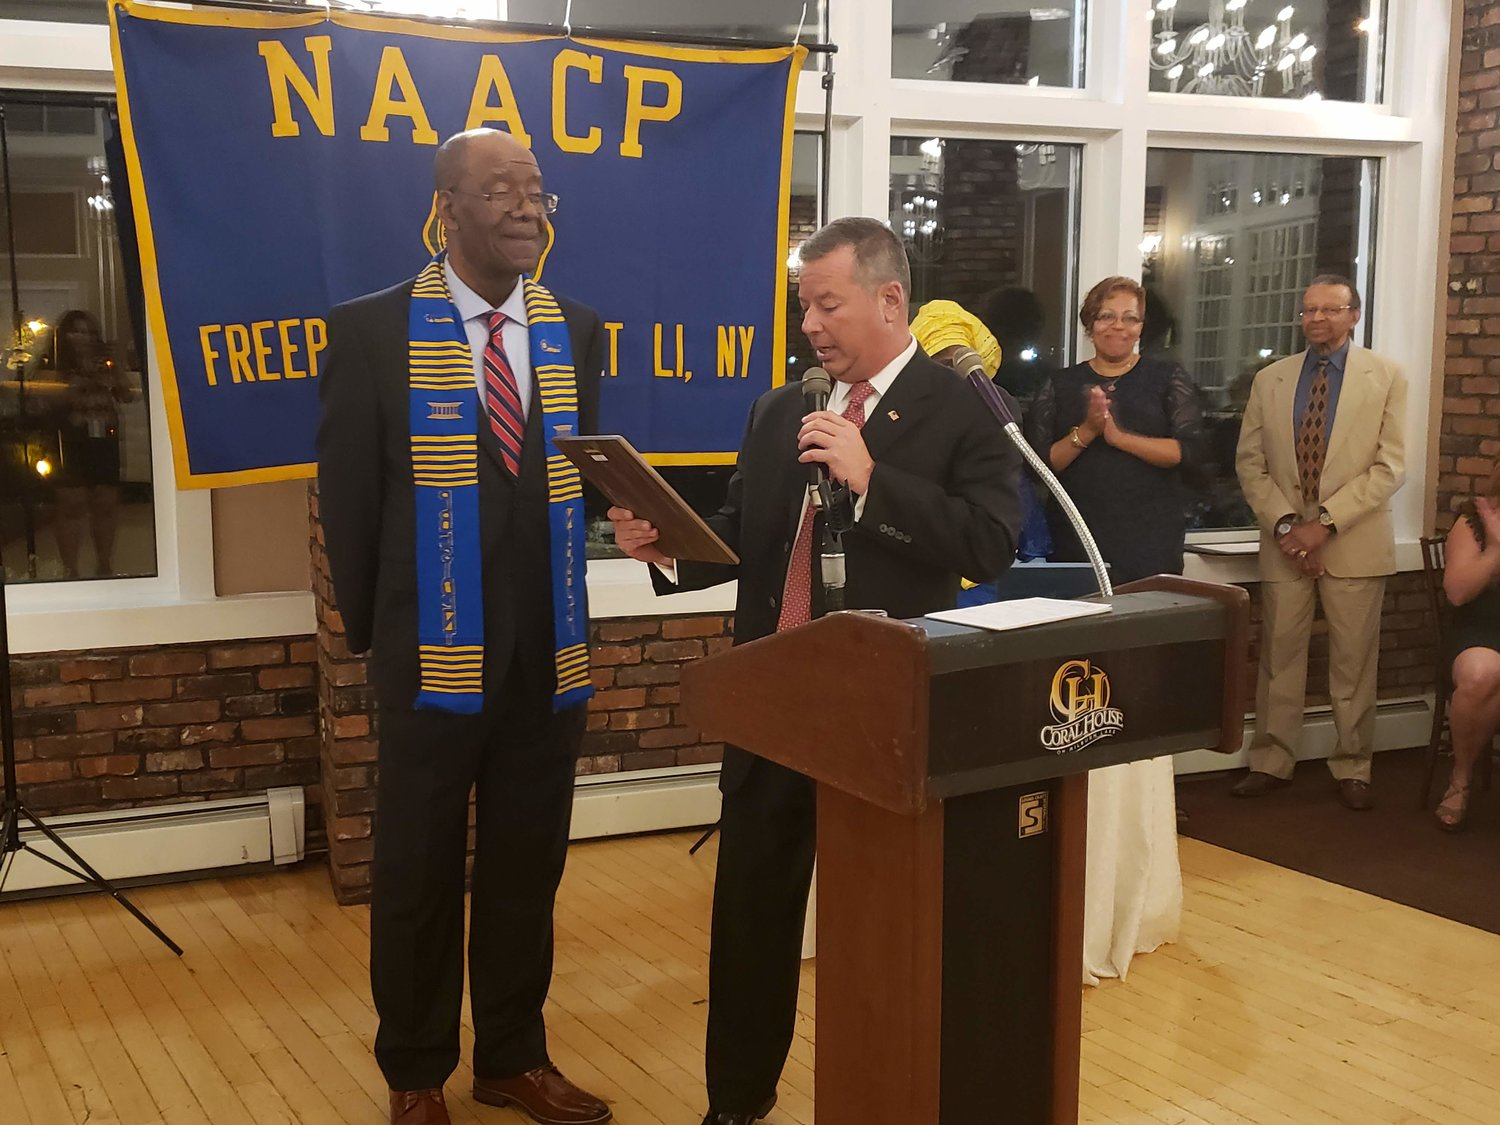 After the president of the NAACP, Douglas Mayers, left, presented John Hrvatin, the director of the Freeport Housing Authority, FHA, with his award; Hrvatin surprised Mayers with a plaque of recognition for his service and support to the village of Freeport and the FHA.